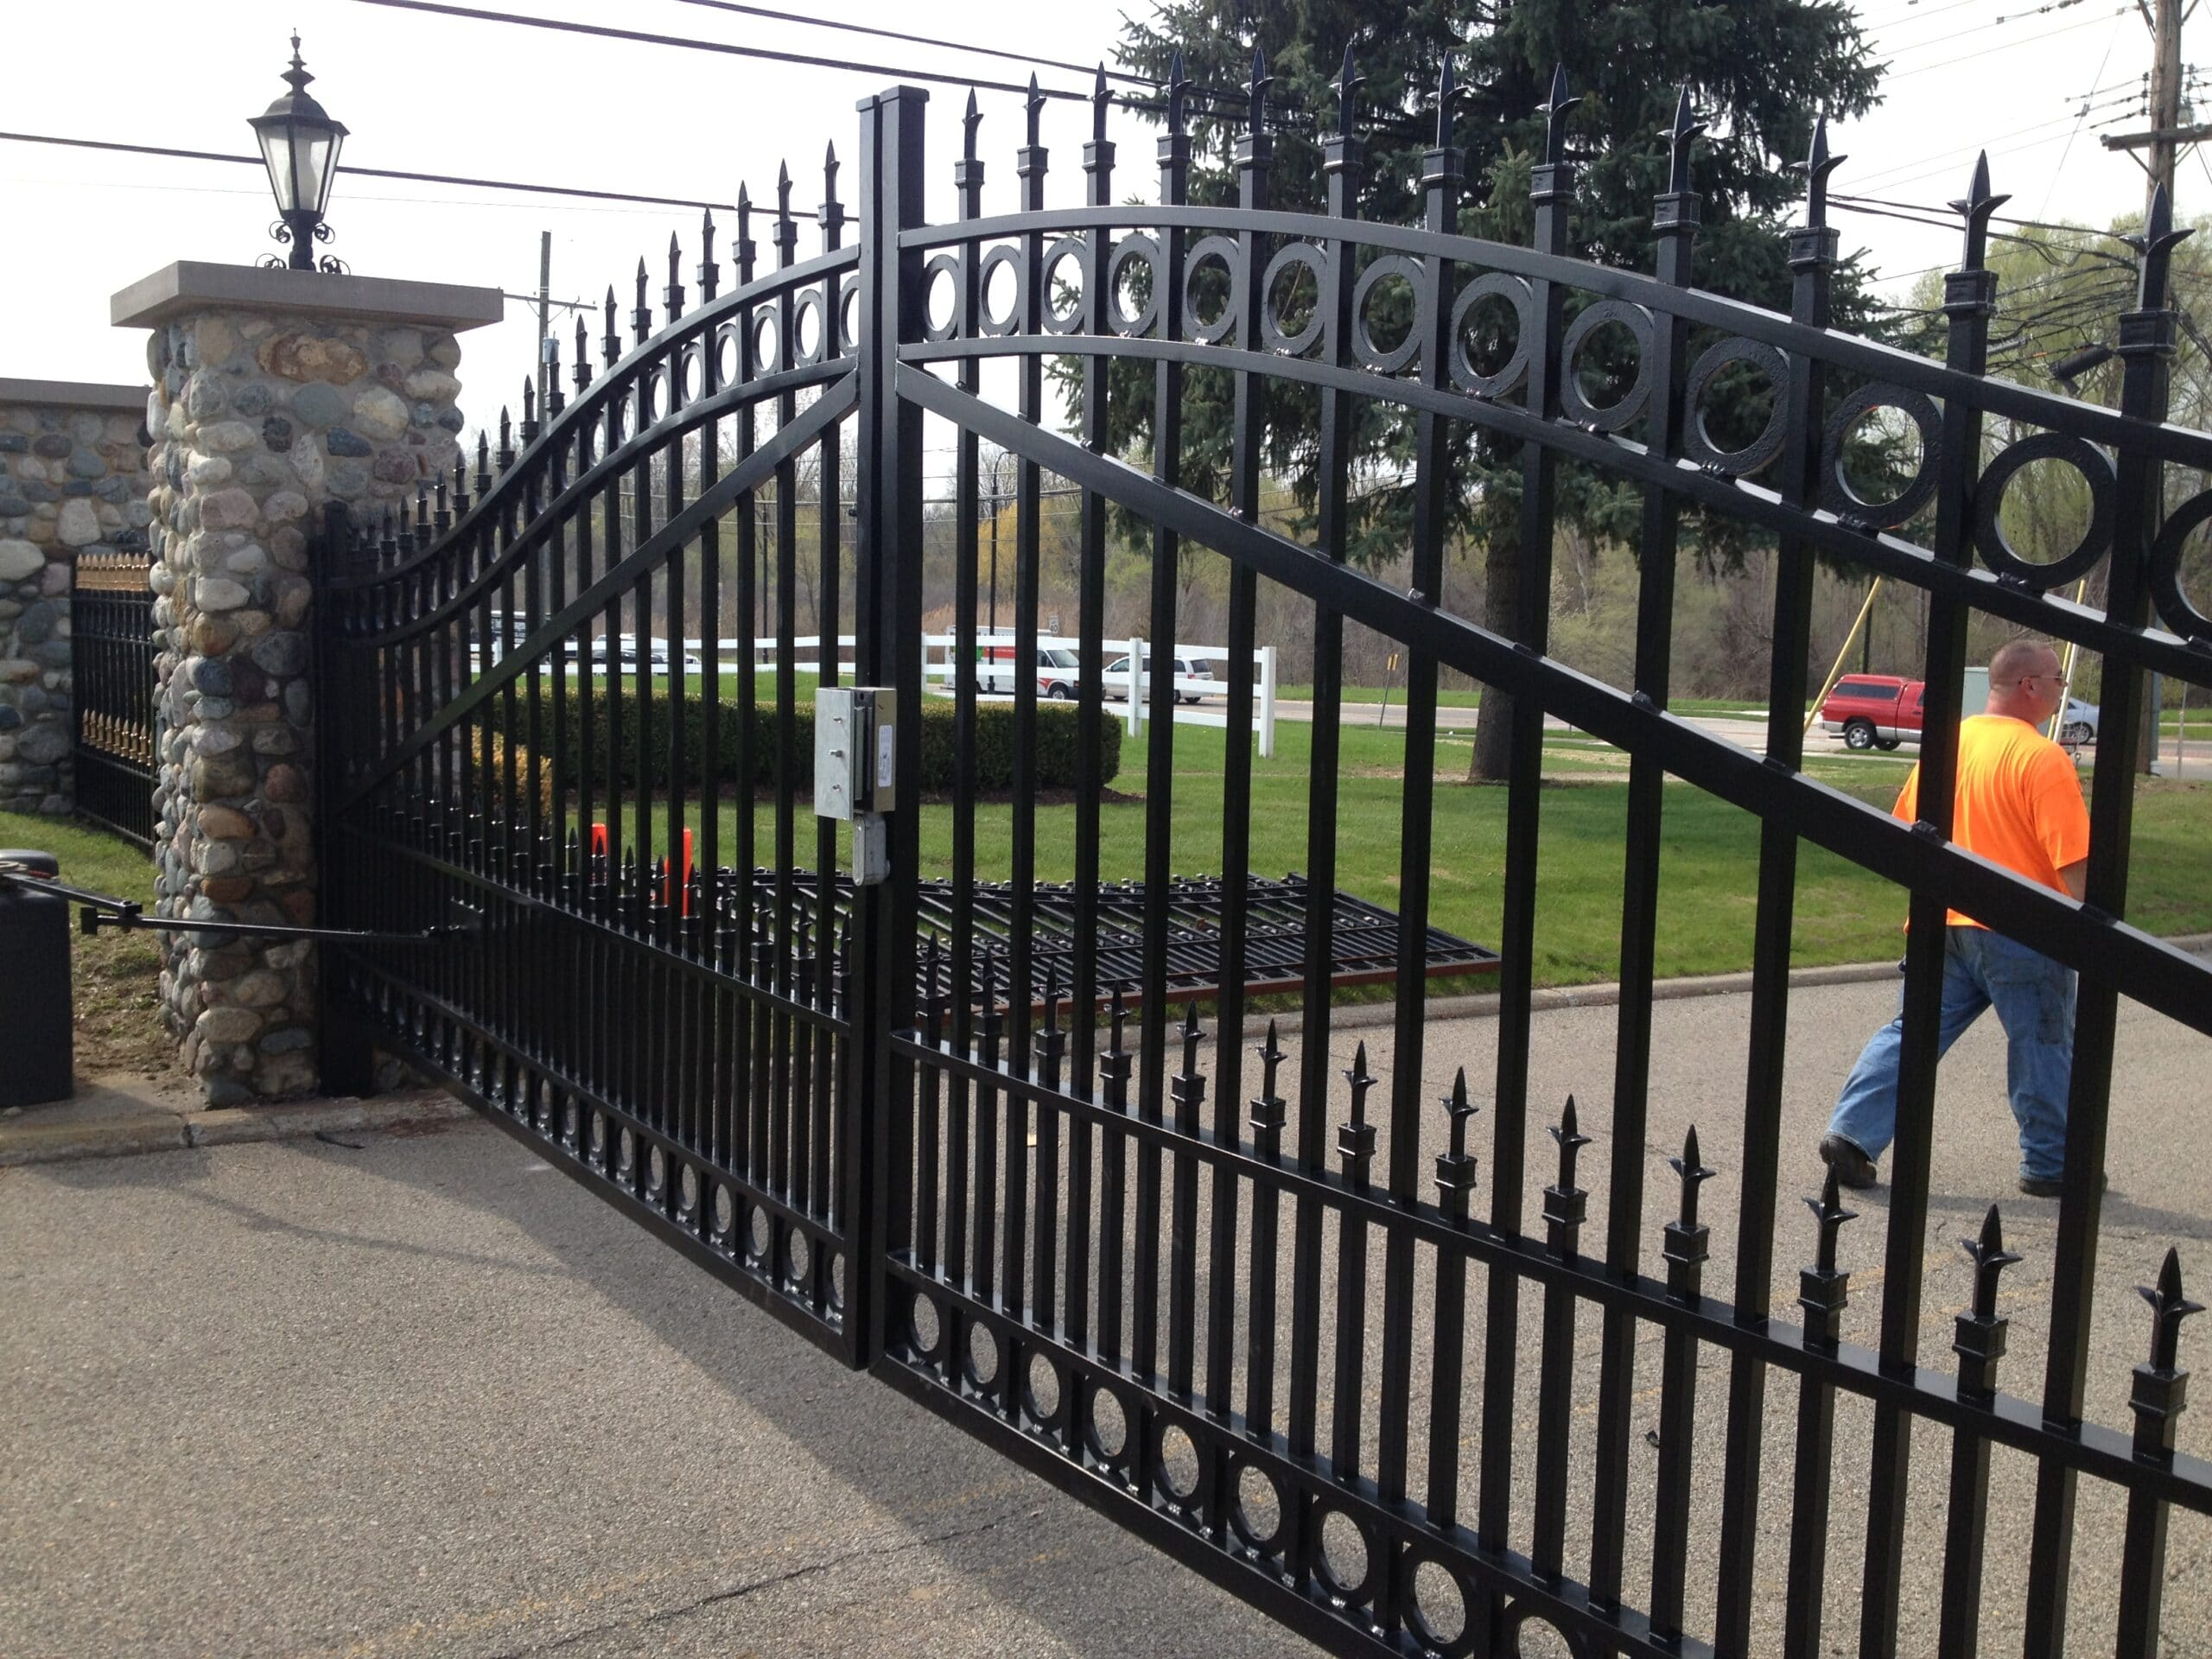 Commercial driveway gate and access control system / electric gate operator at Van Hoosen Jones Cemetery in Rochester, Michigan